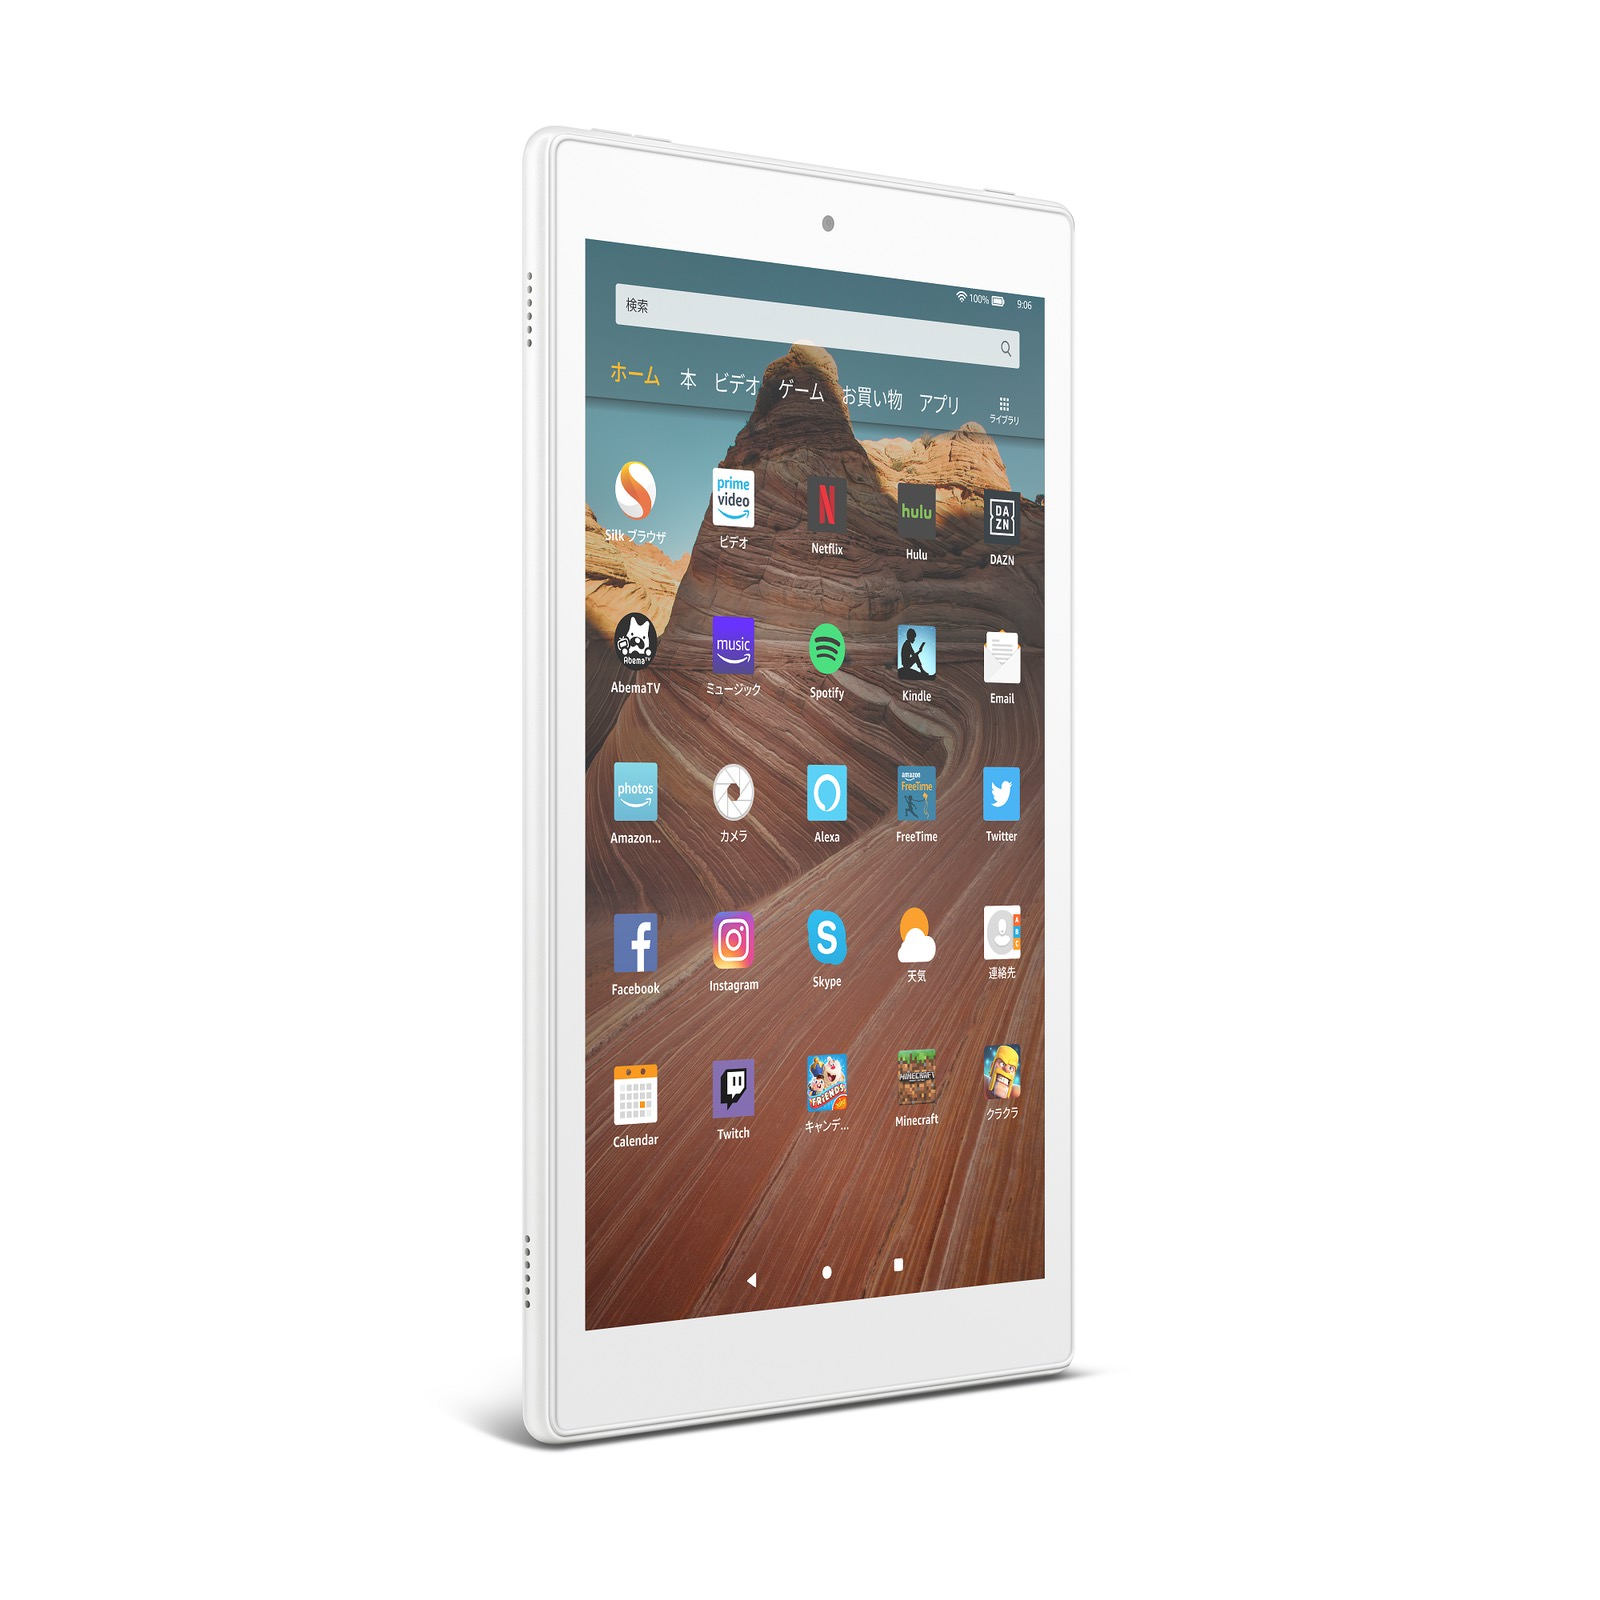 Fire-HD-10-Tablet-New-Model-07.jpg